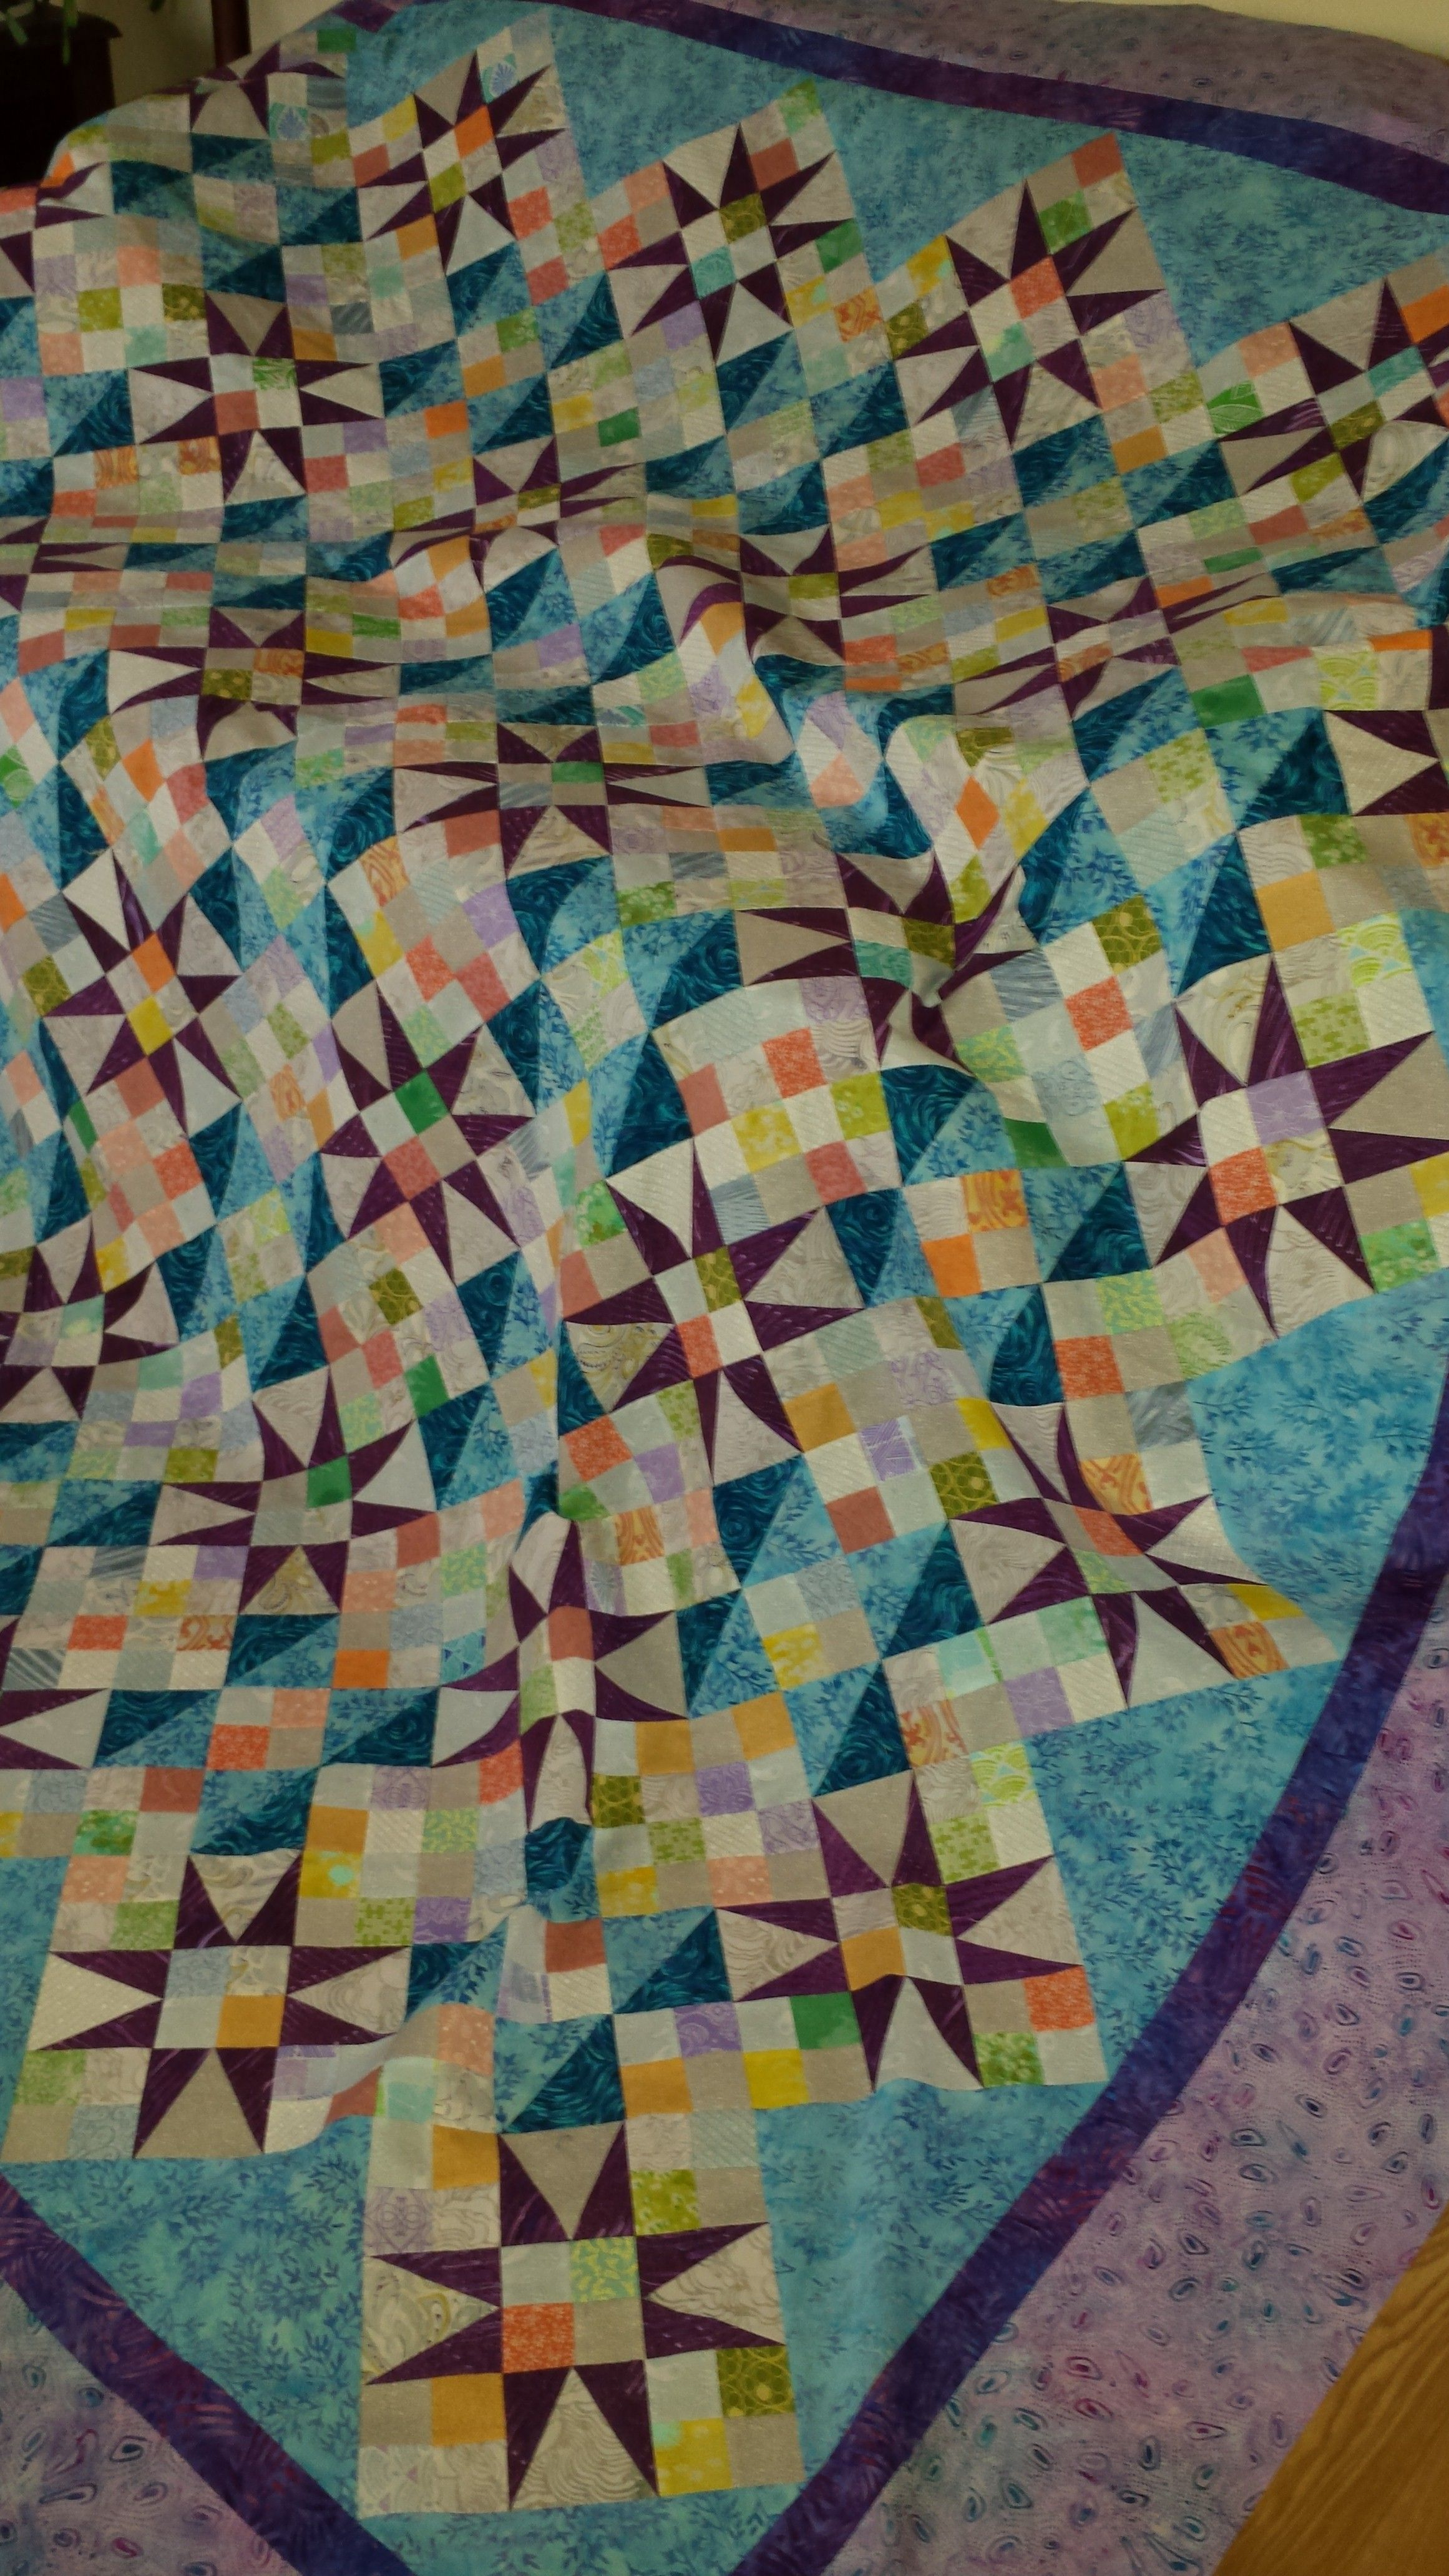 Cathedral Stars Quilt Pattern : cathedral, stars, quilt, pattern, Cathedral, Stars, Quilts,, Batik, Quilts